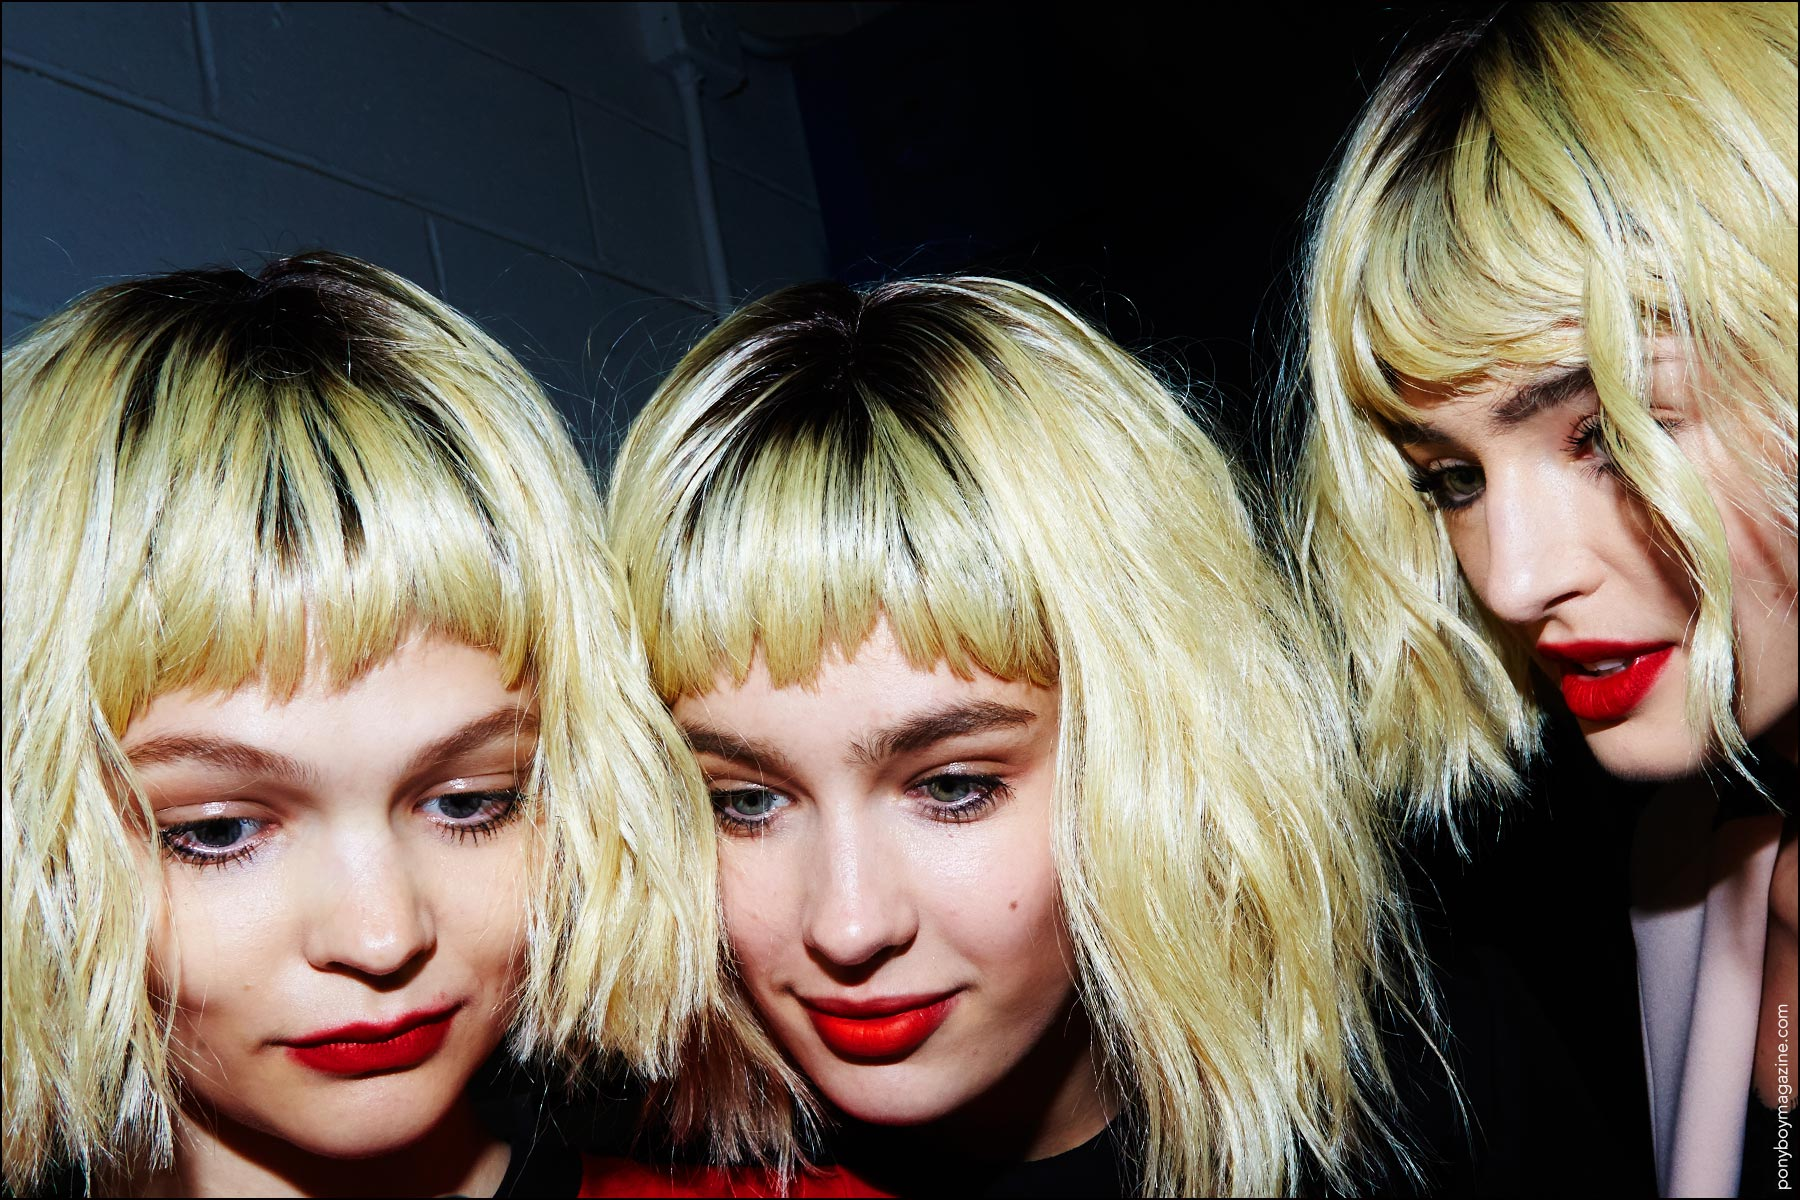 Models backtage in blond bob wigs. Photographed at Georgine Spring/Summer 2017 show by Alexander Thompson for Ponyboy magazine New York.